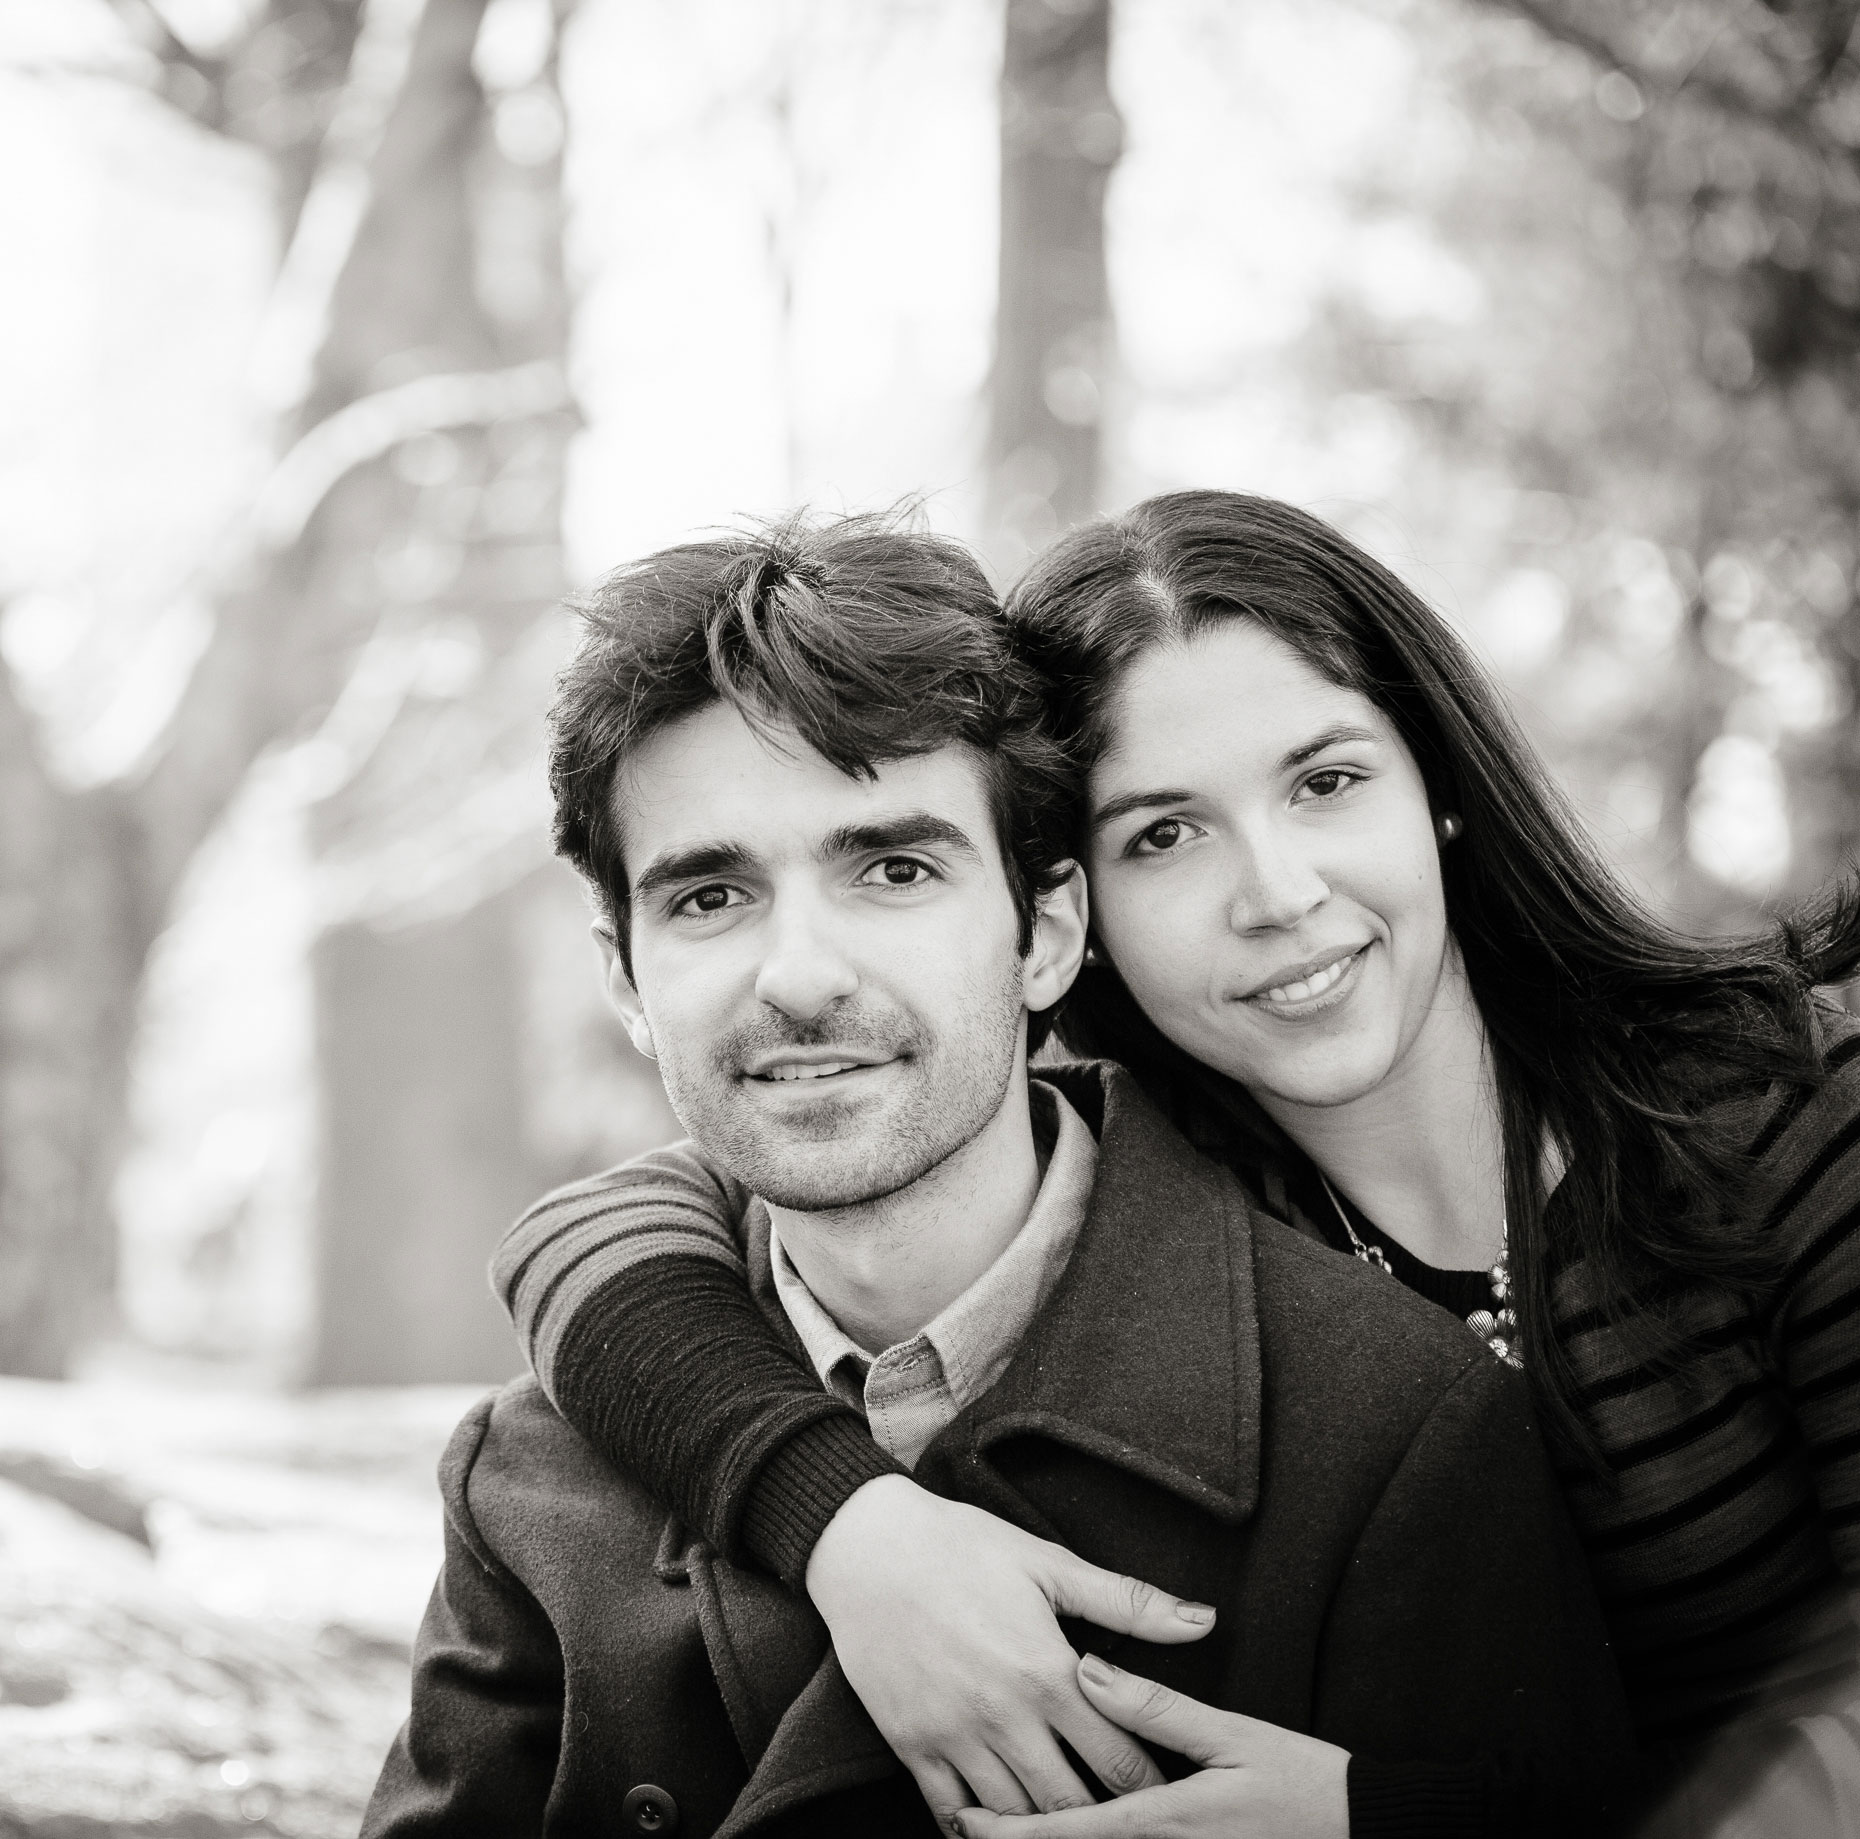 Kathi_Littwin_Photography_NYC_Portraits7066